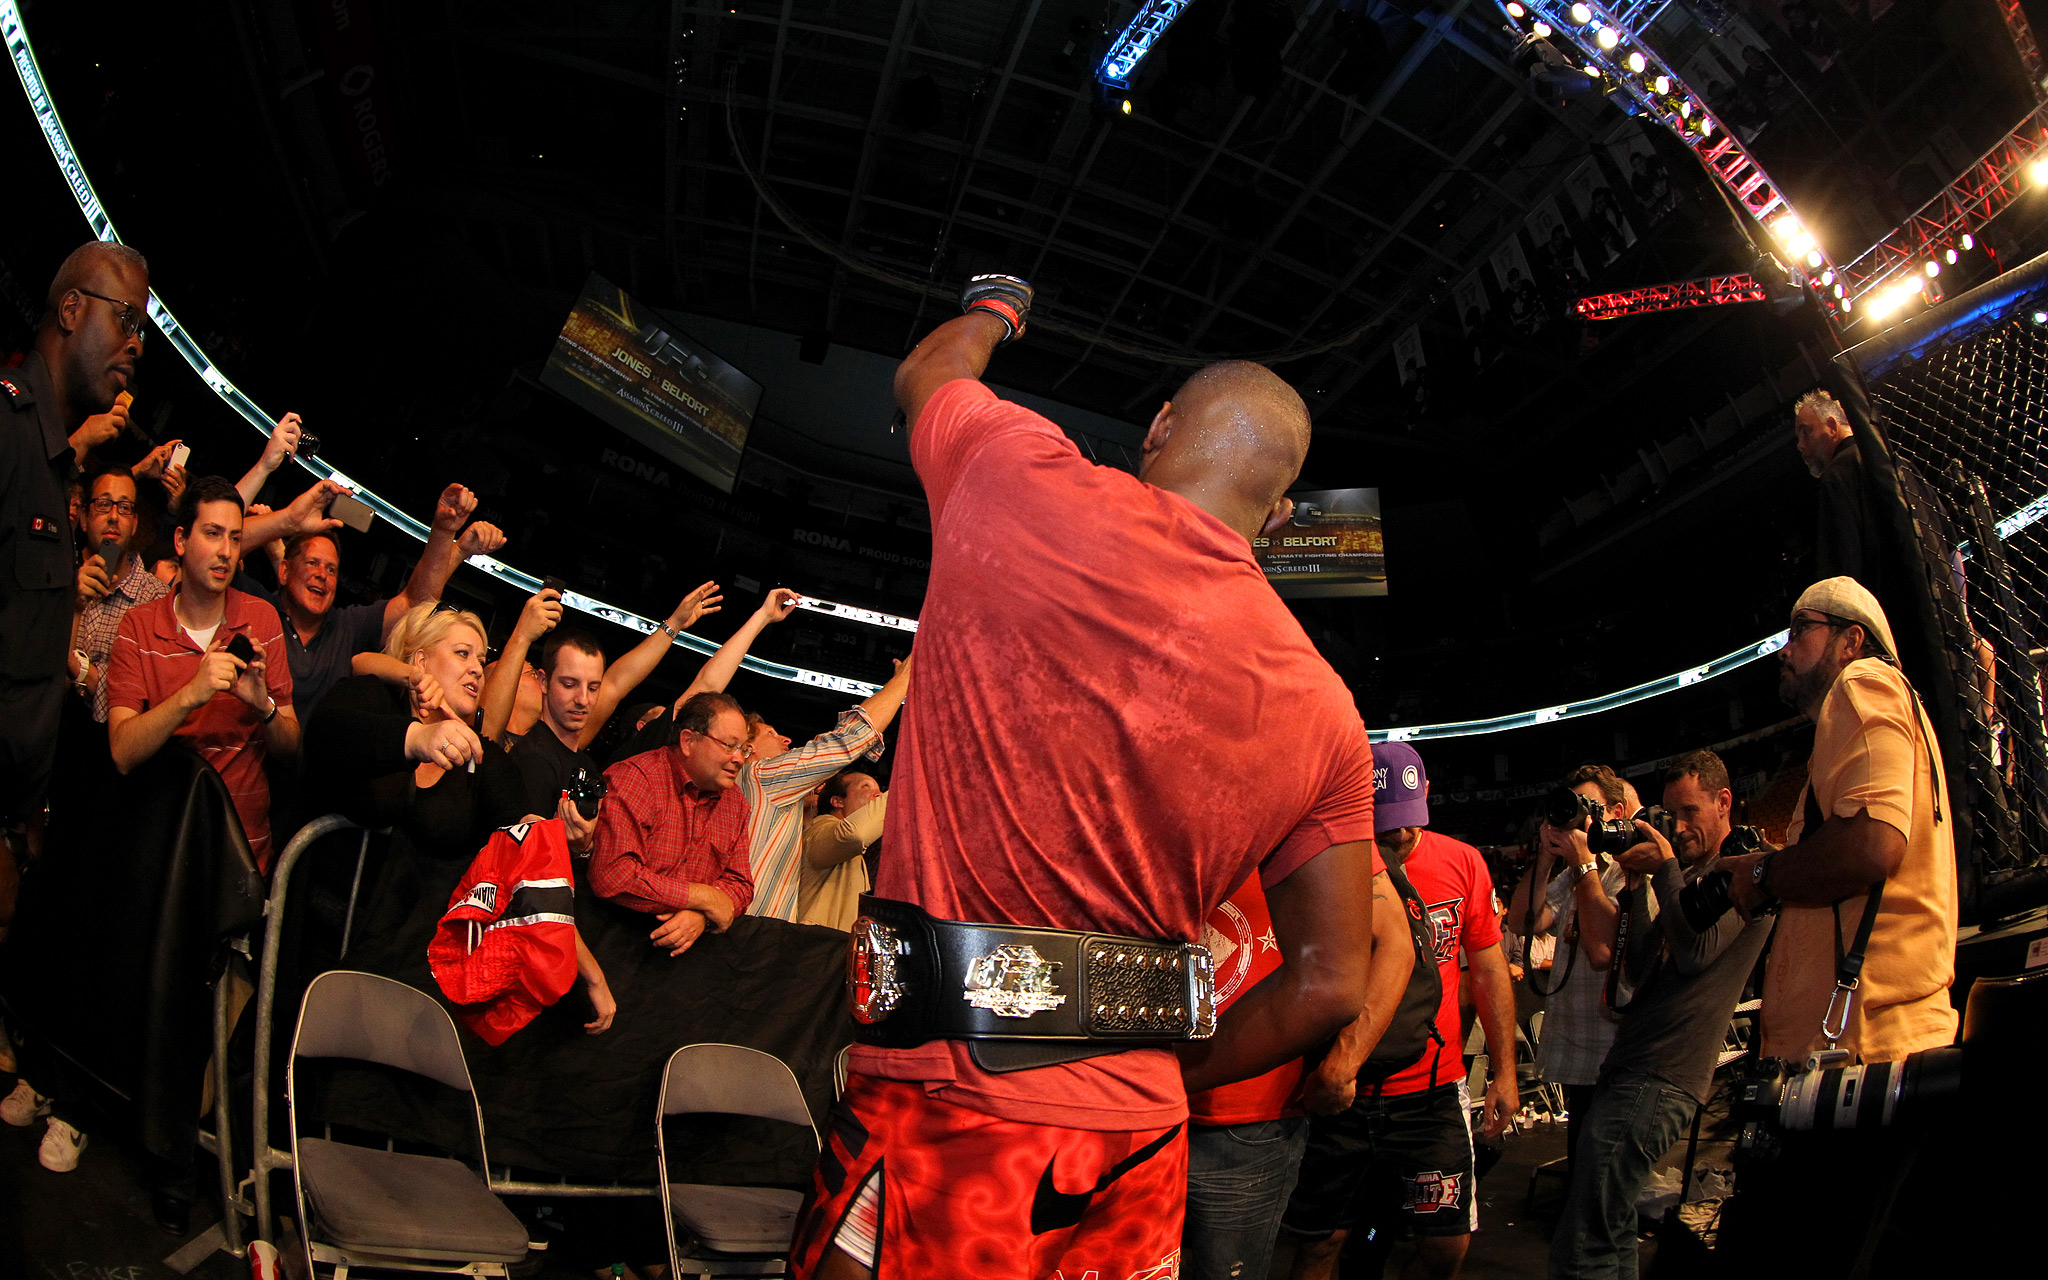 Jon Jones vs. Vitor Belfort